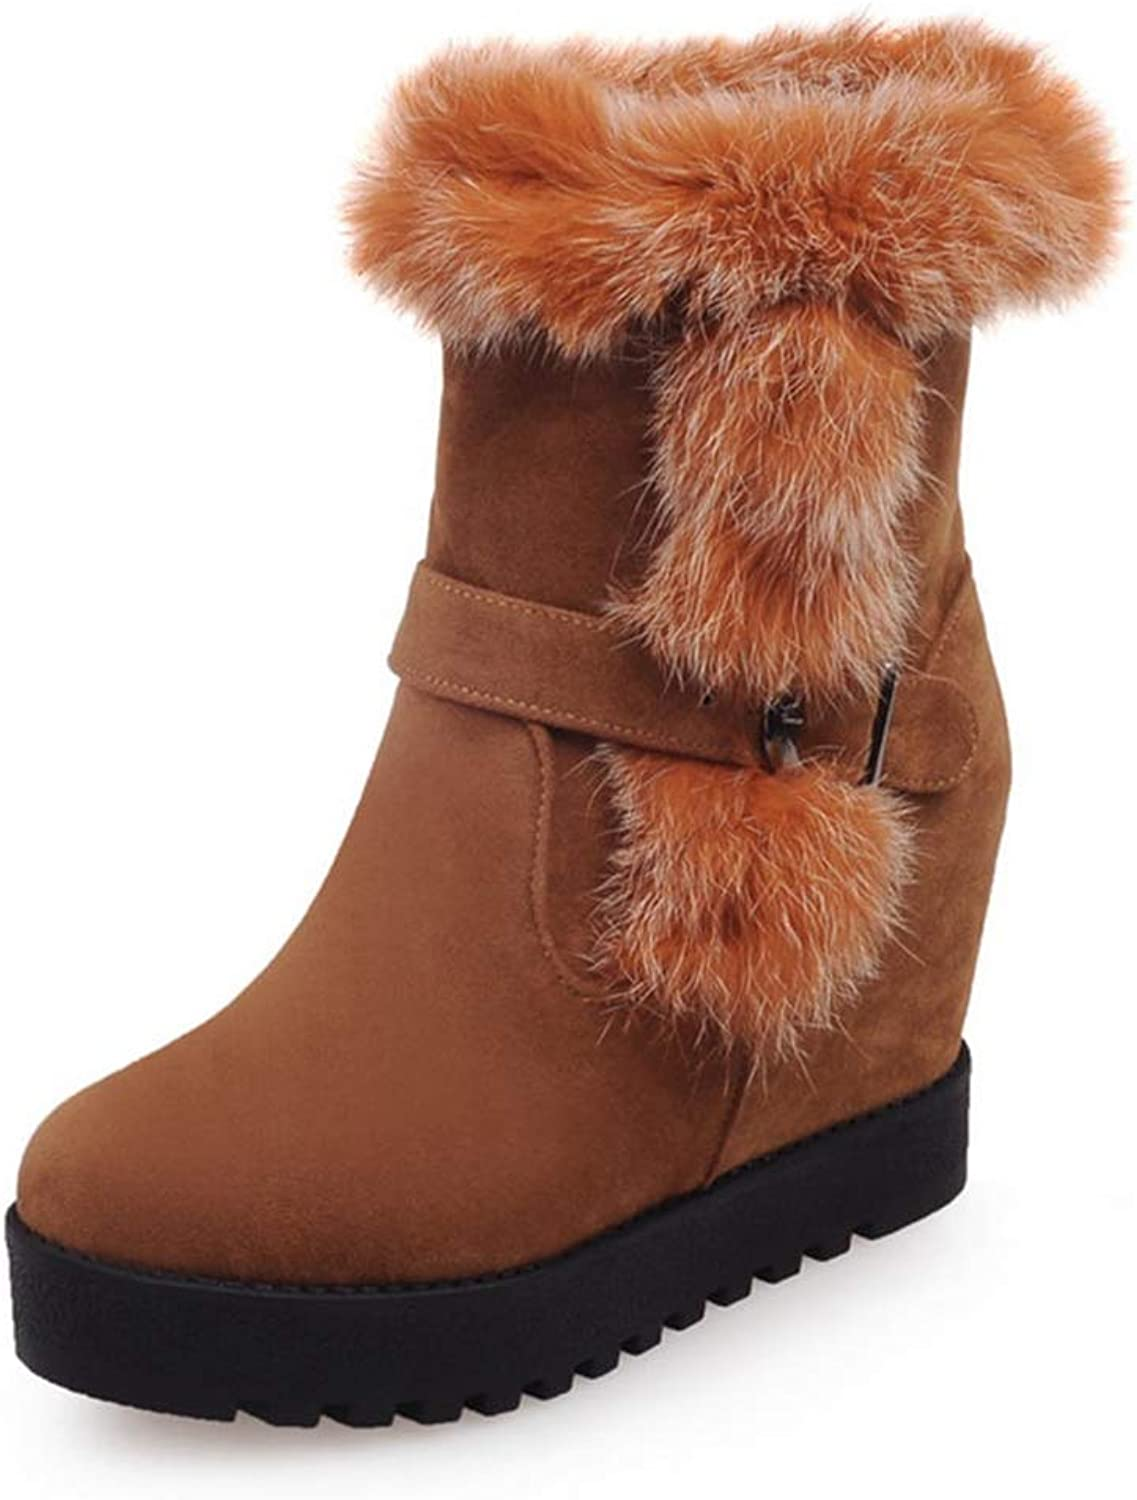 T-JULY Winter Women Mid Calf Boots Warm Add Fur Slip on Wedge Heels shoes